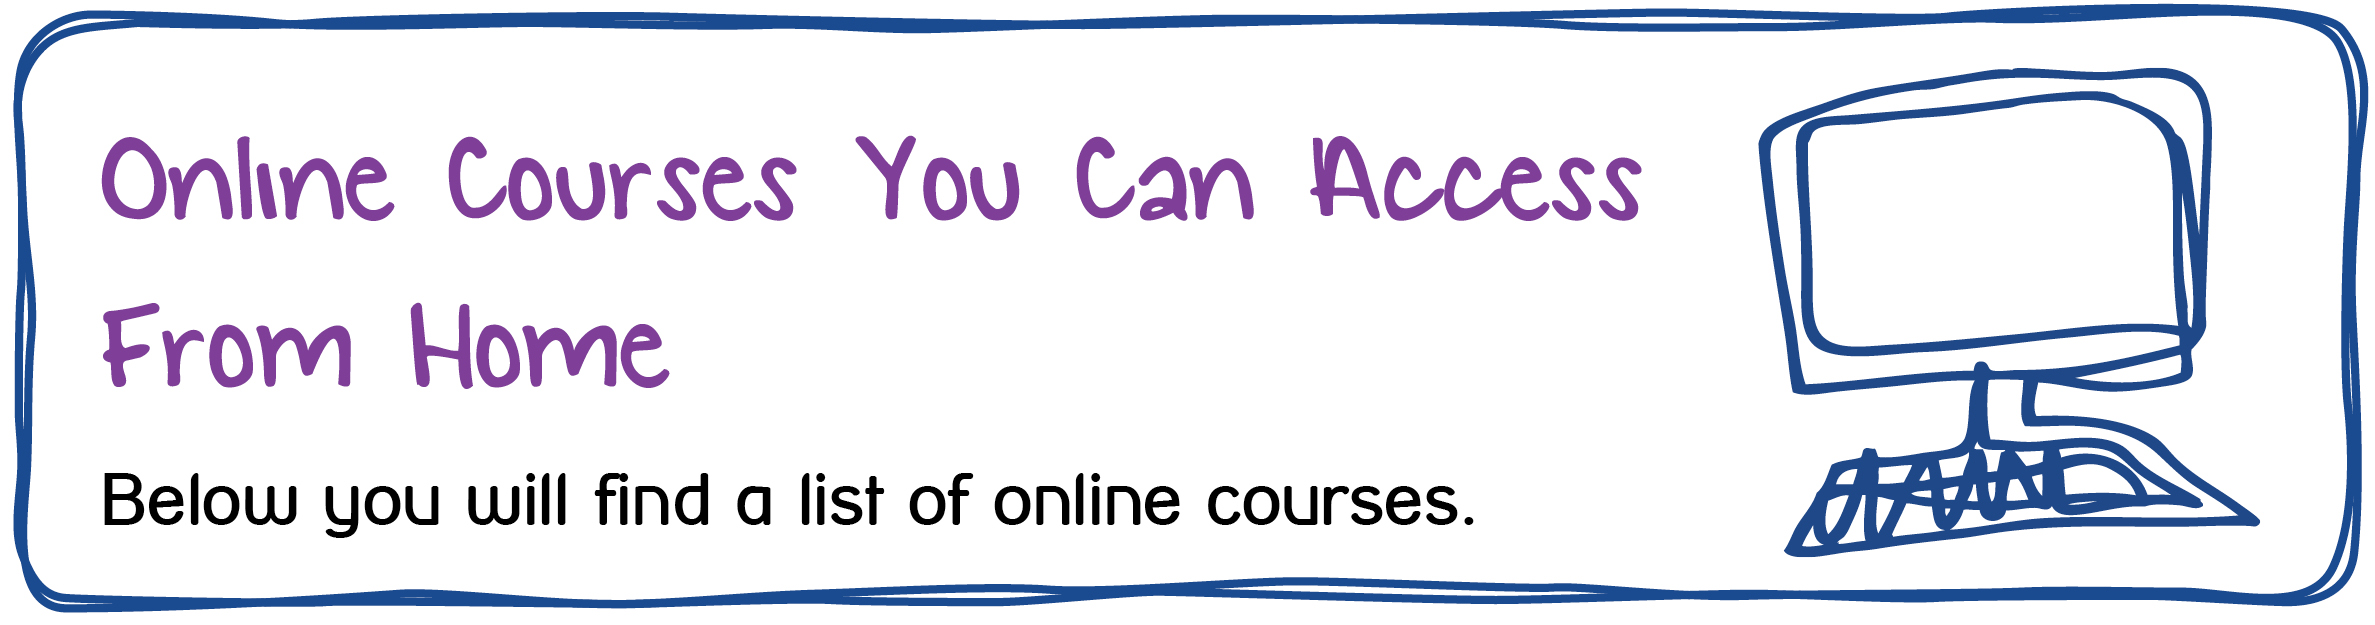 Online Courses You Can Access From Home. Below you will find a list of online courses.